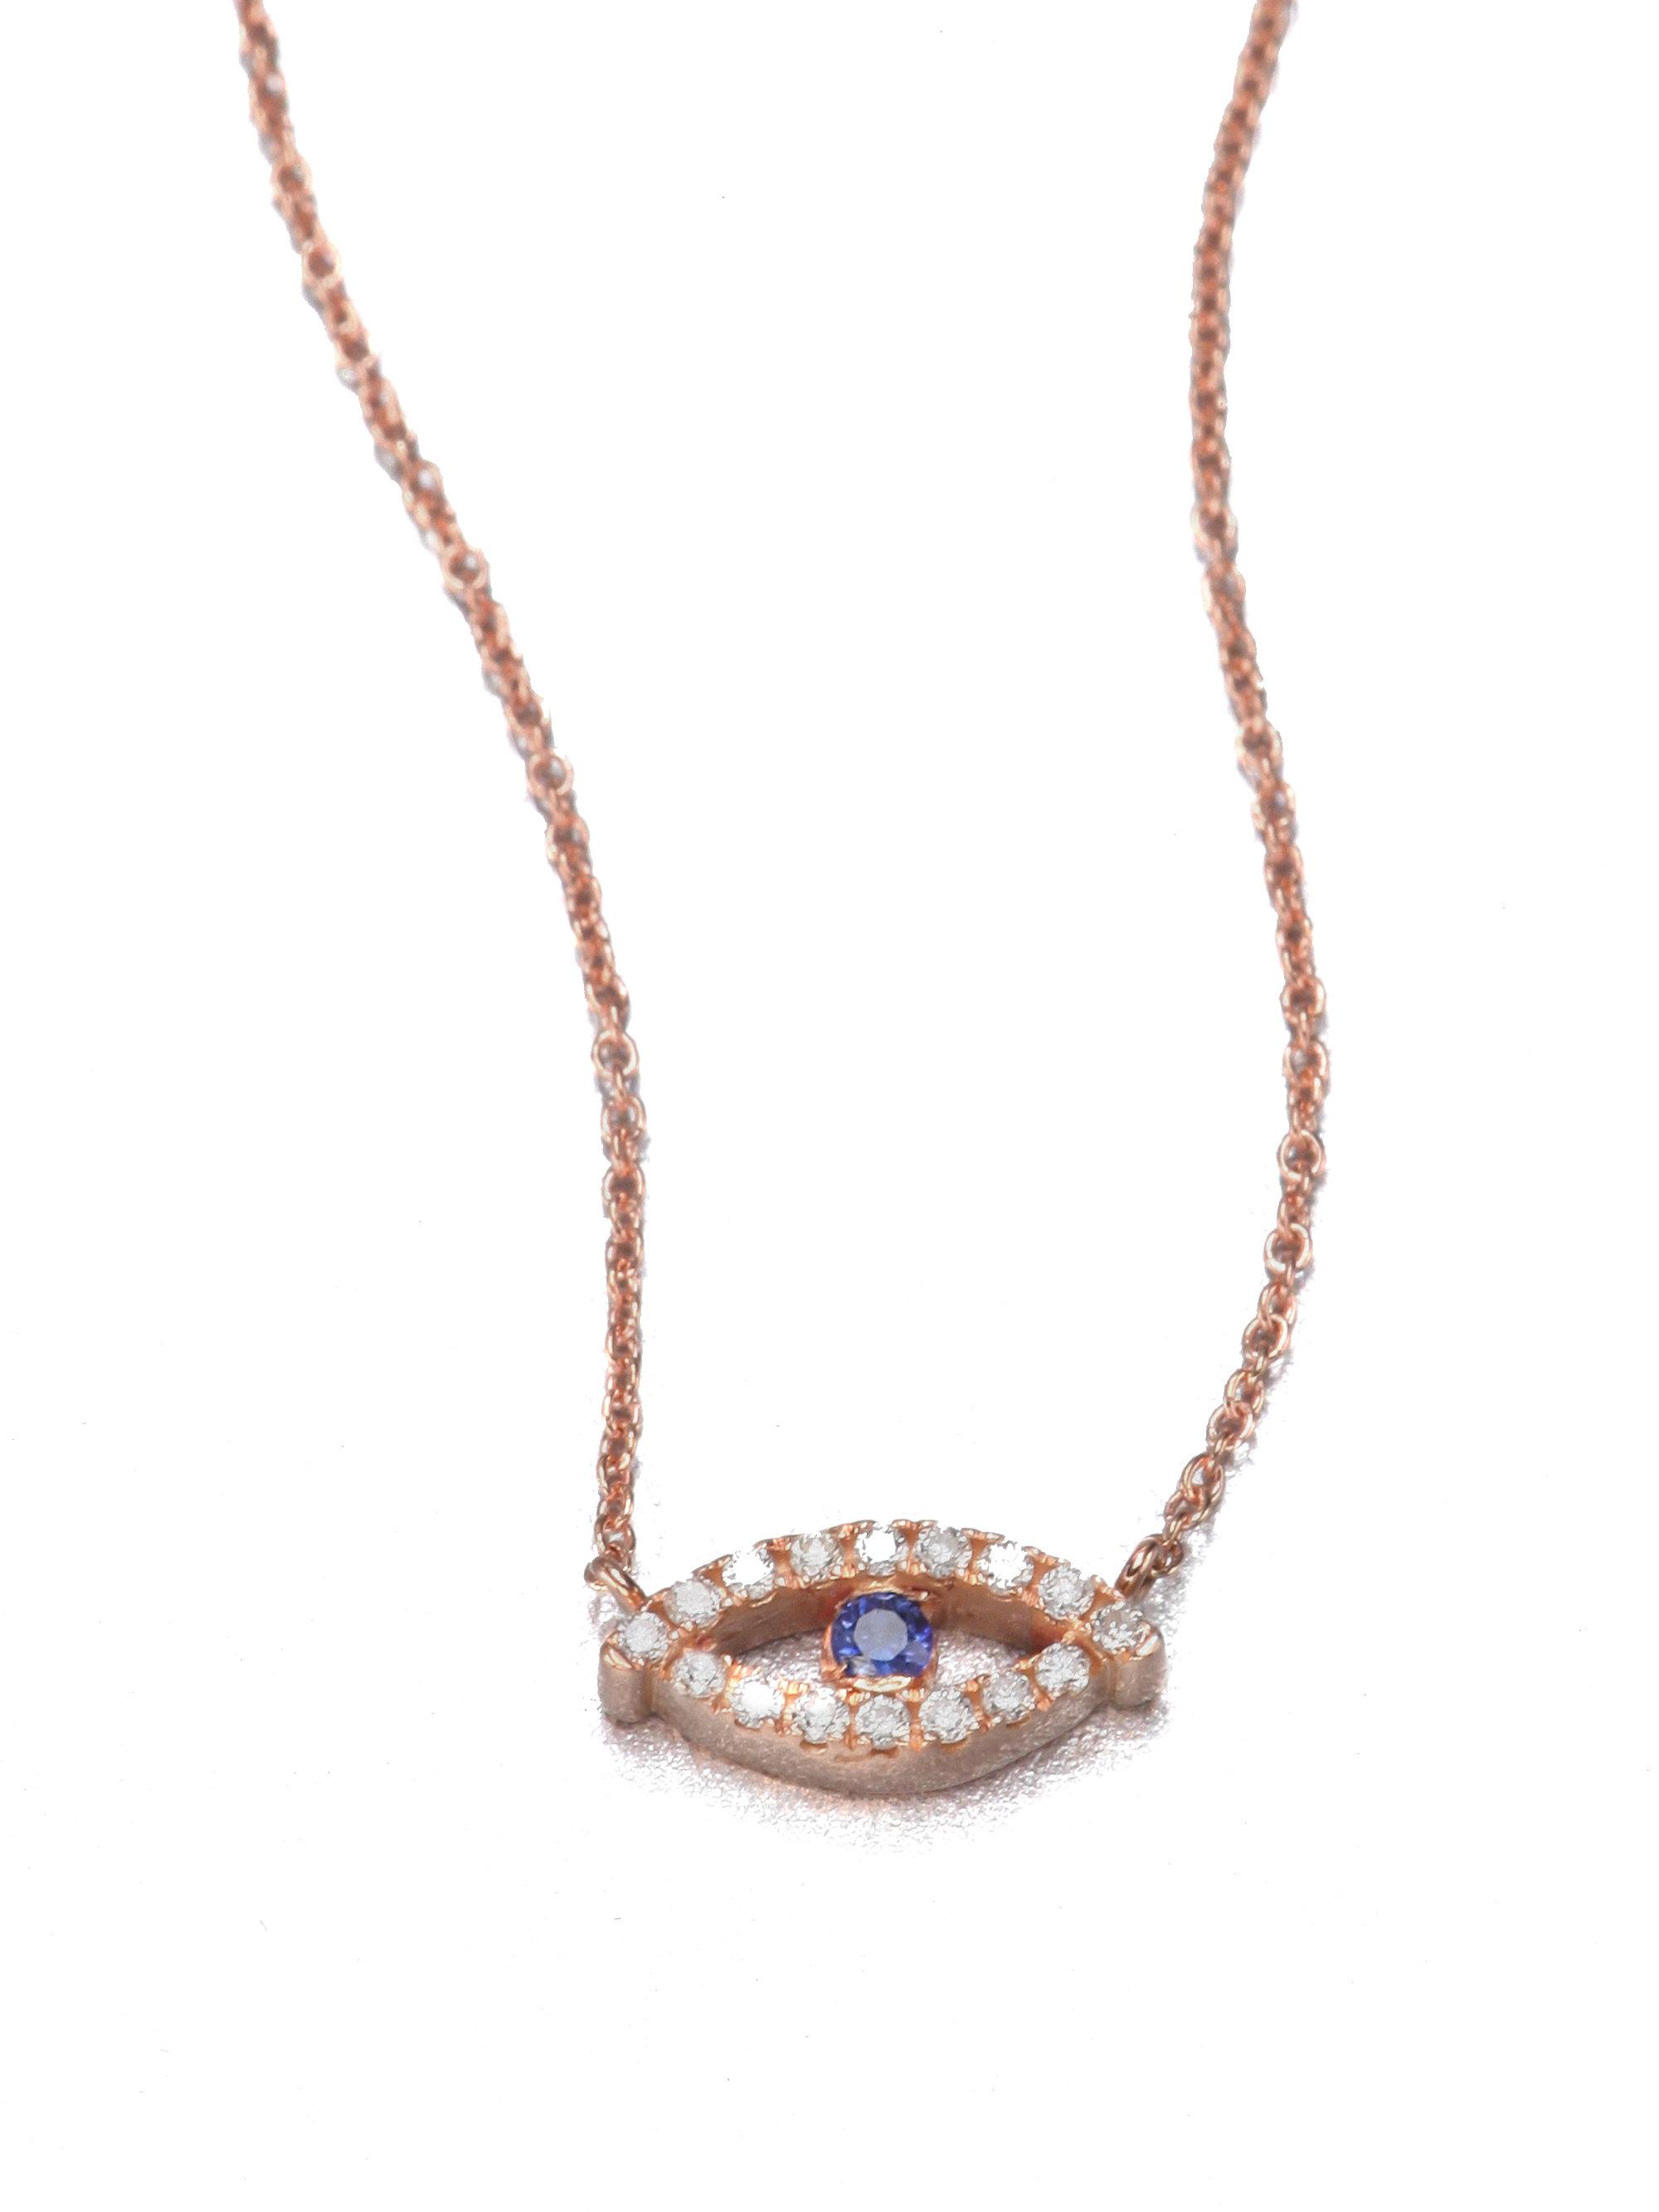 Diane Kordas Evil Eye Bolo Suede, 18-karat Rose Gold And Diamond Necklace